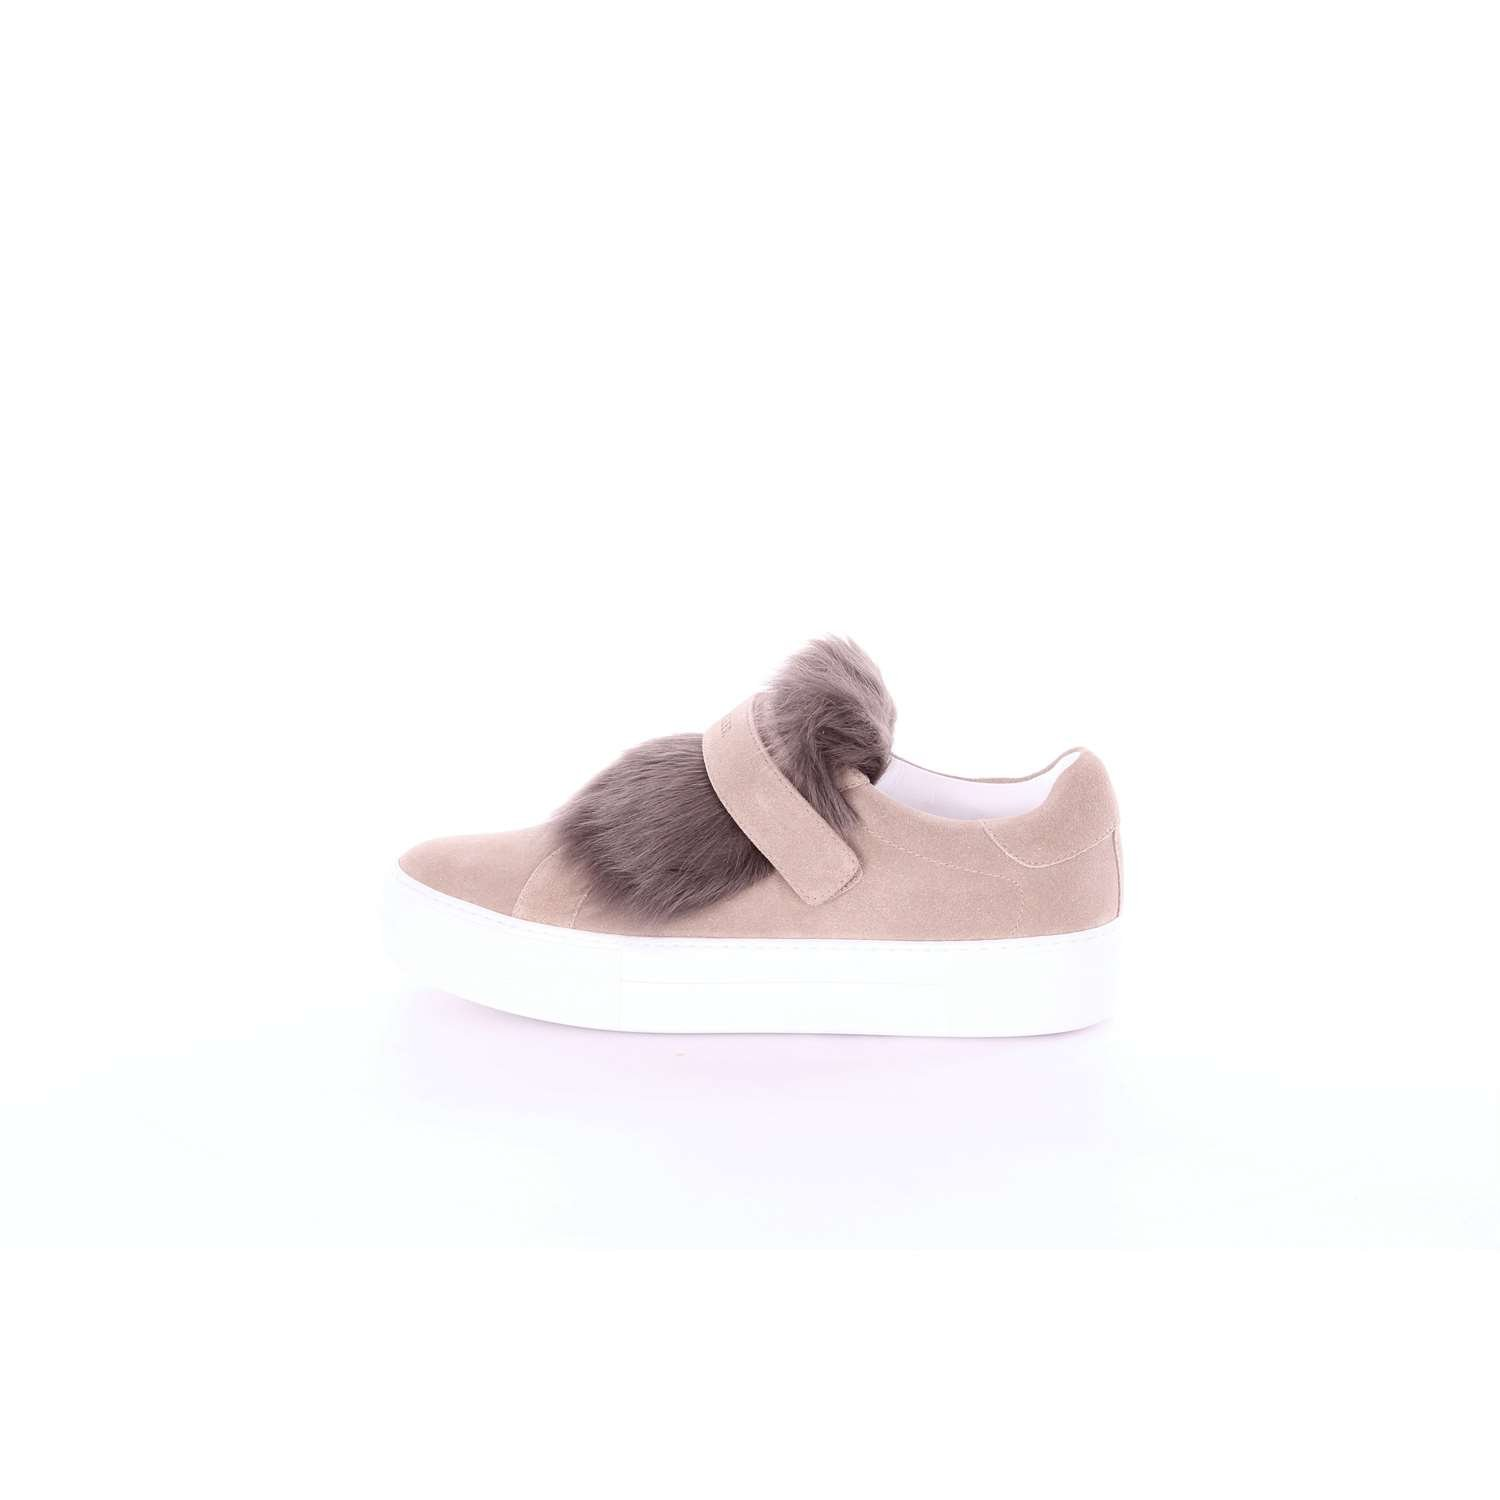 Moncler C209A2031200019B7 Slip on Mujer 40 EU|Arena